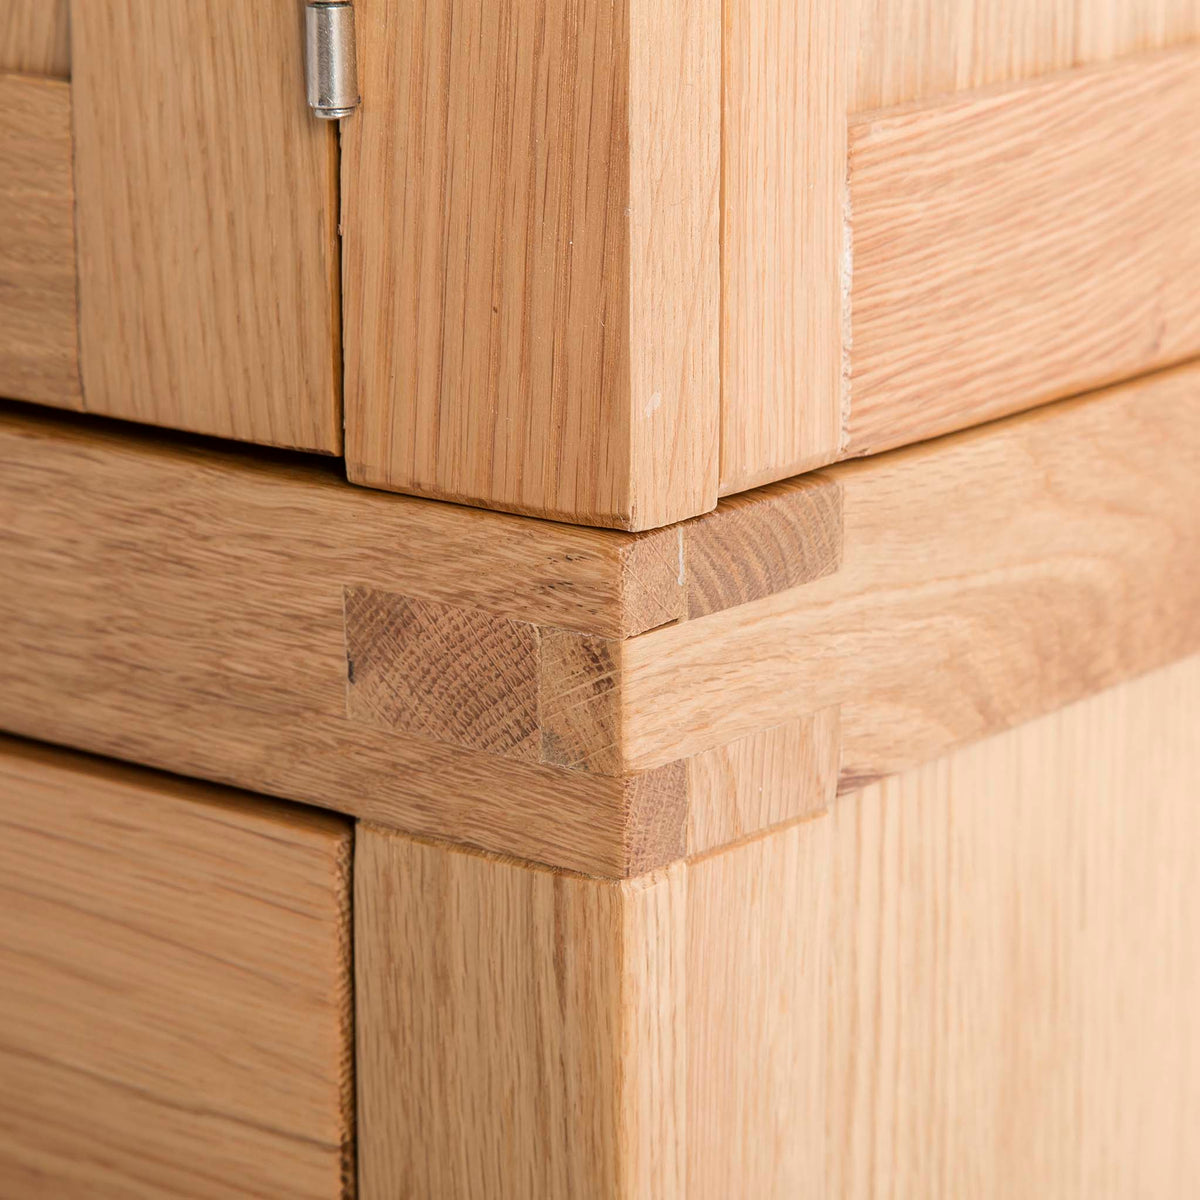 Abbey Light Oak 3 Door Triple Wardrobe with Drawers - Close up of bottom drawer section tenon joint